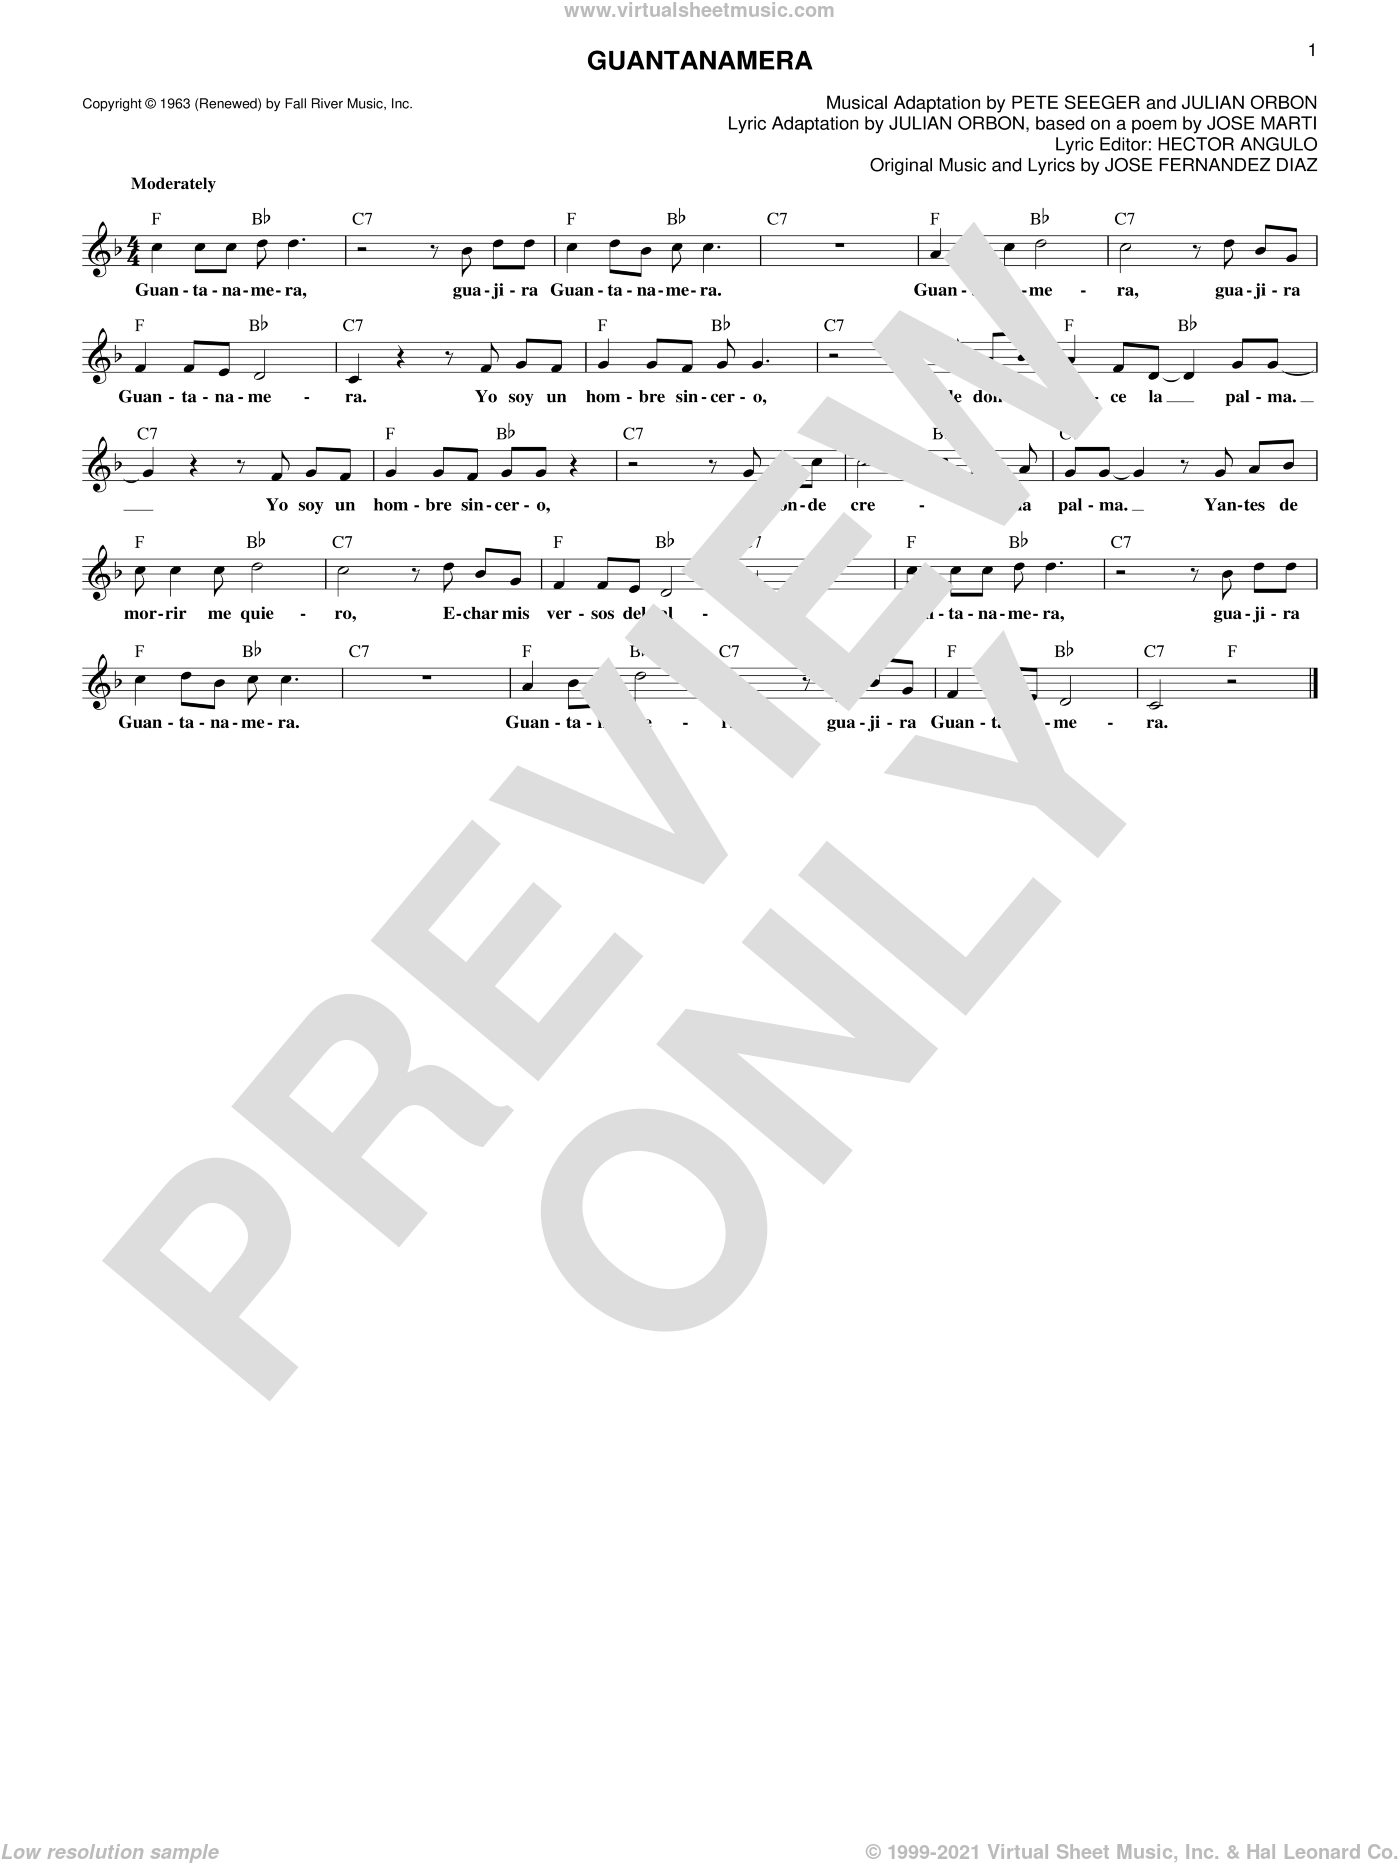 Guantanamera sheet music for voice and other instruments (fake book) by Pete Seeger, Hector Angulo, Jose Fernandez Diaz and Julian Orbon, intermediate skill level